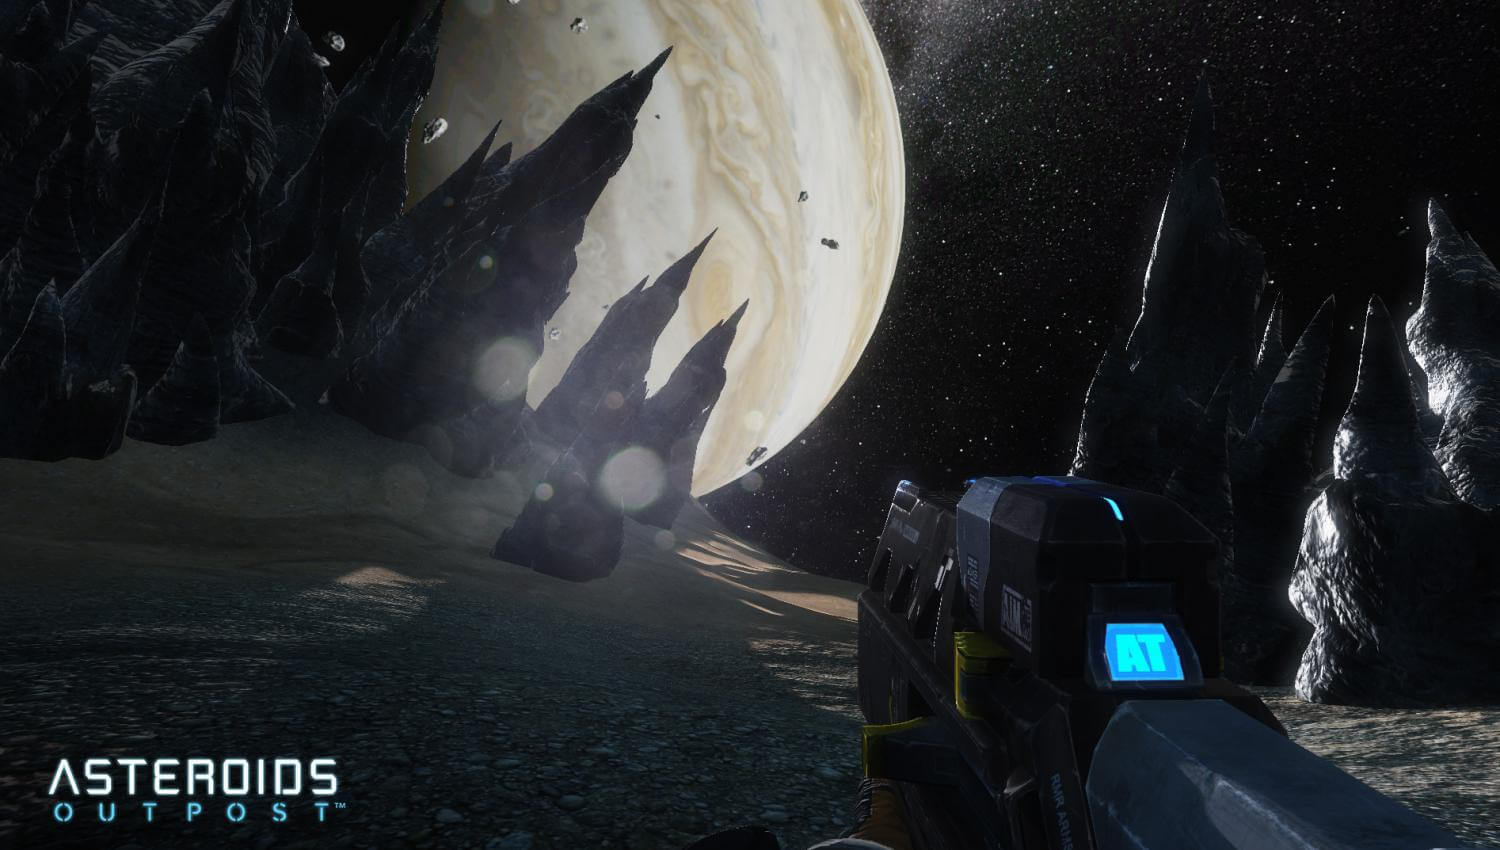 Asteroids: Outpost - Early Access